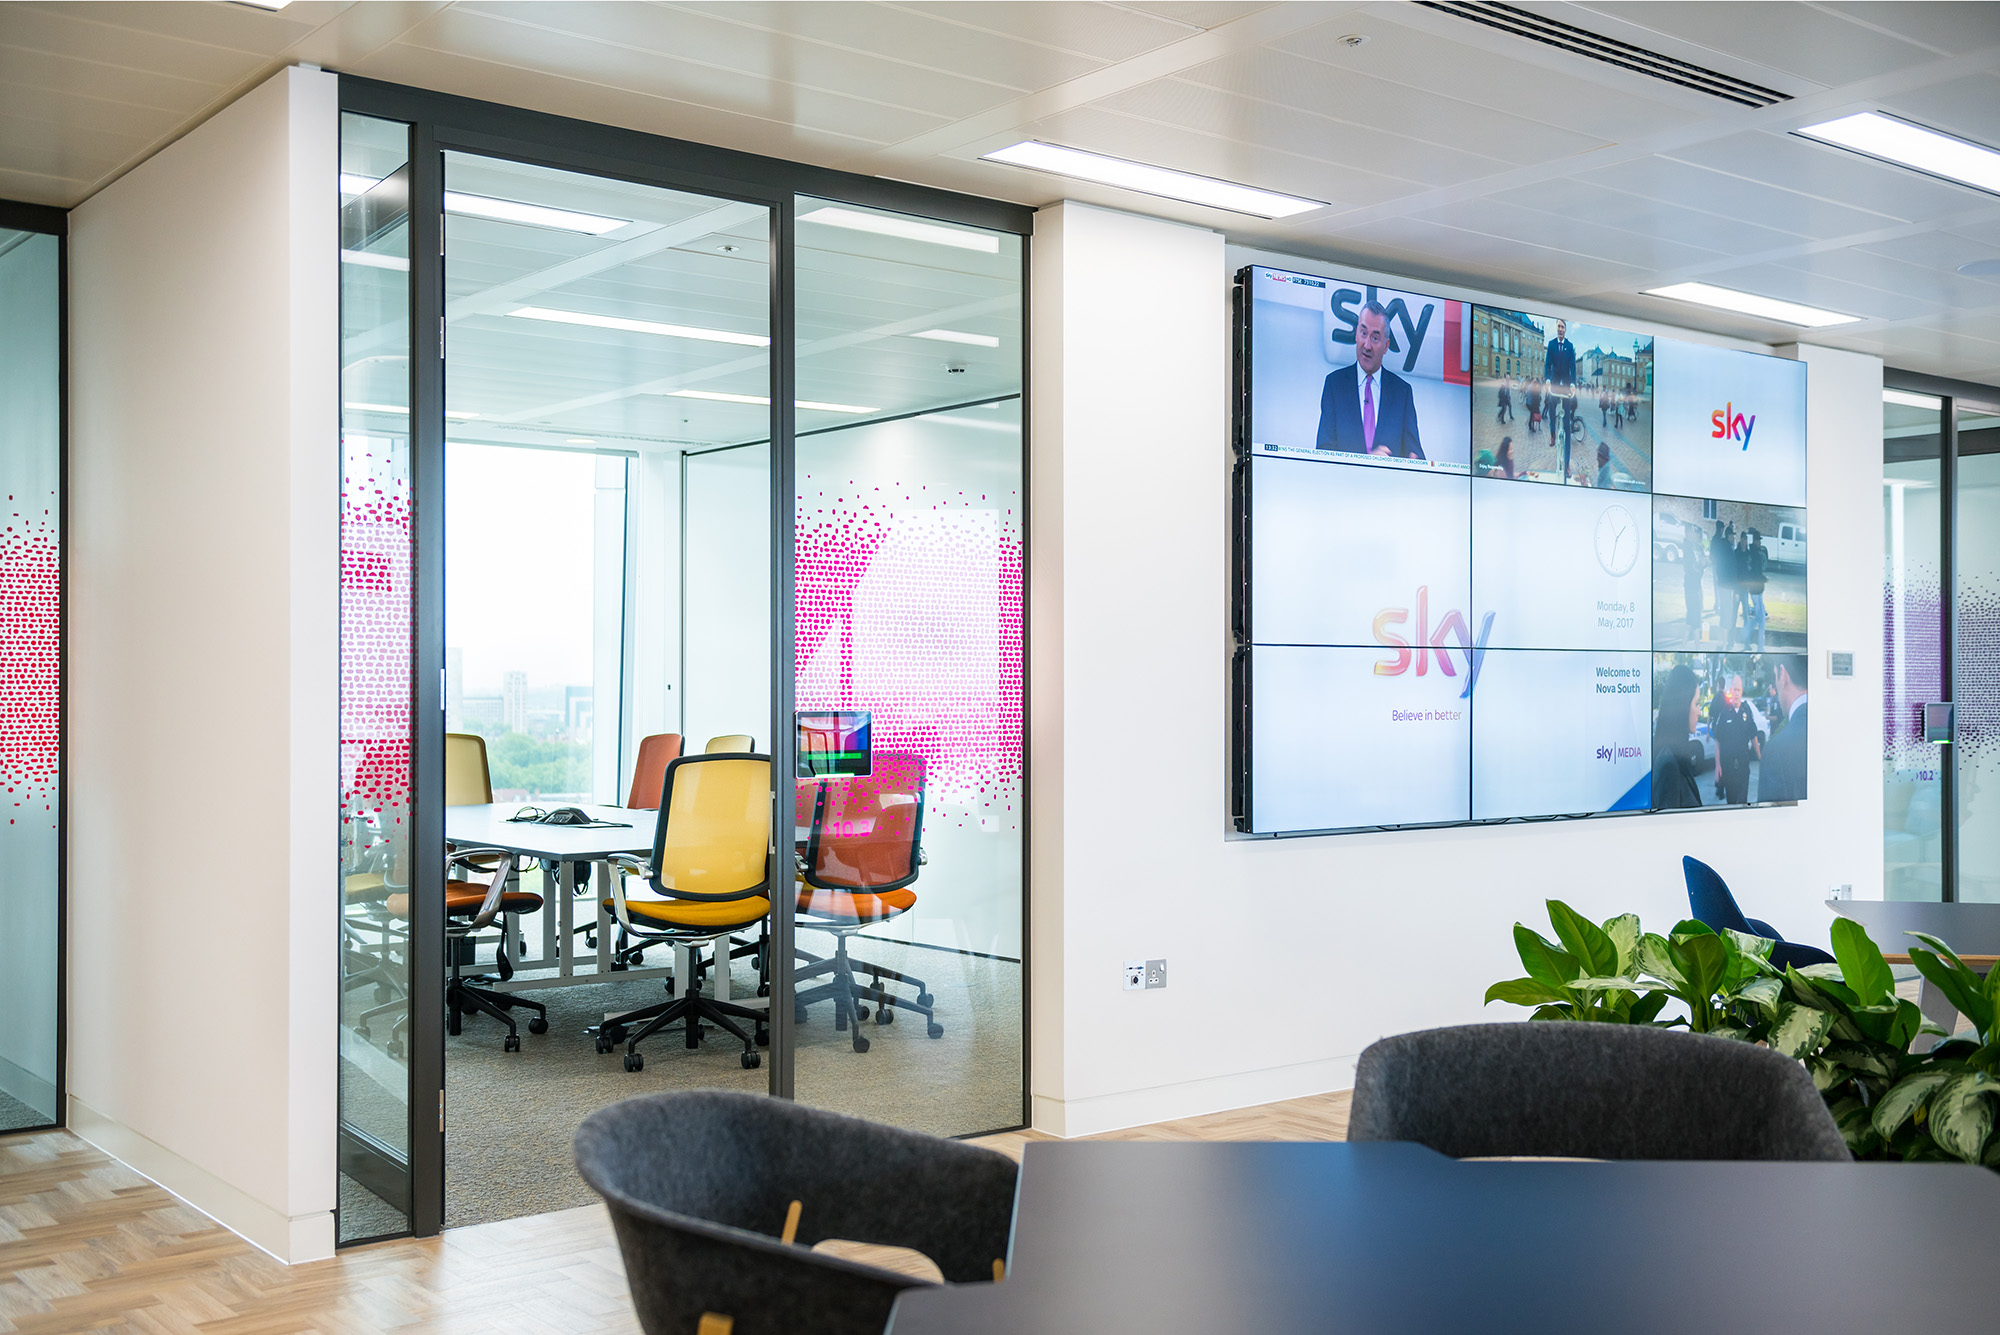 ODGroup - Award-winning integrated design, project management and construction company specialising in the commercial markets.